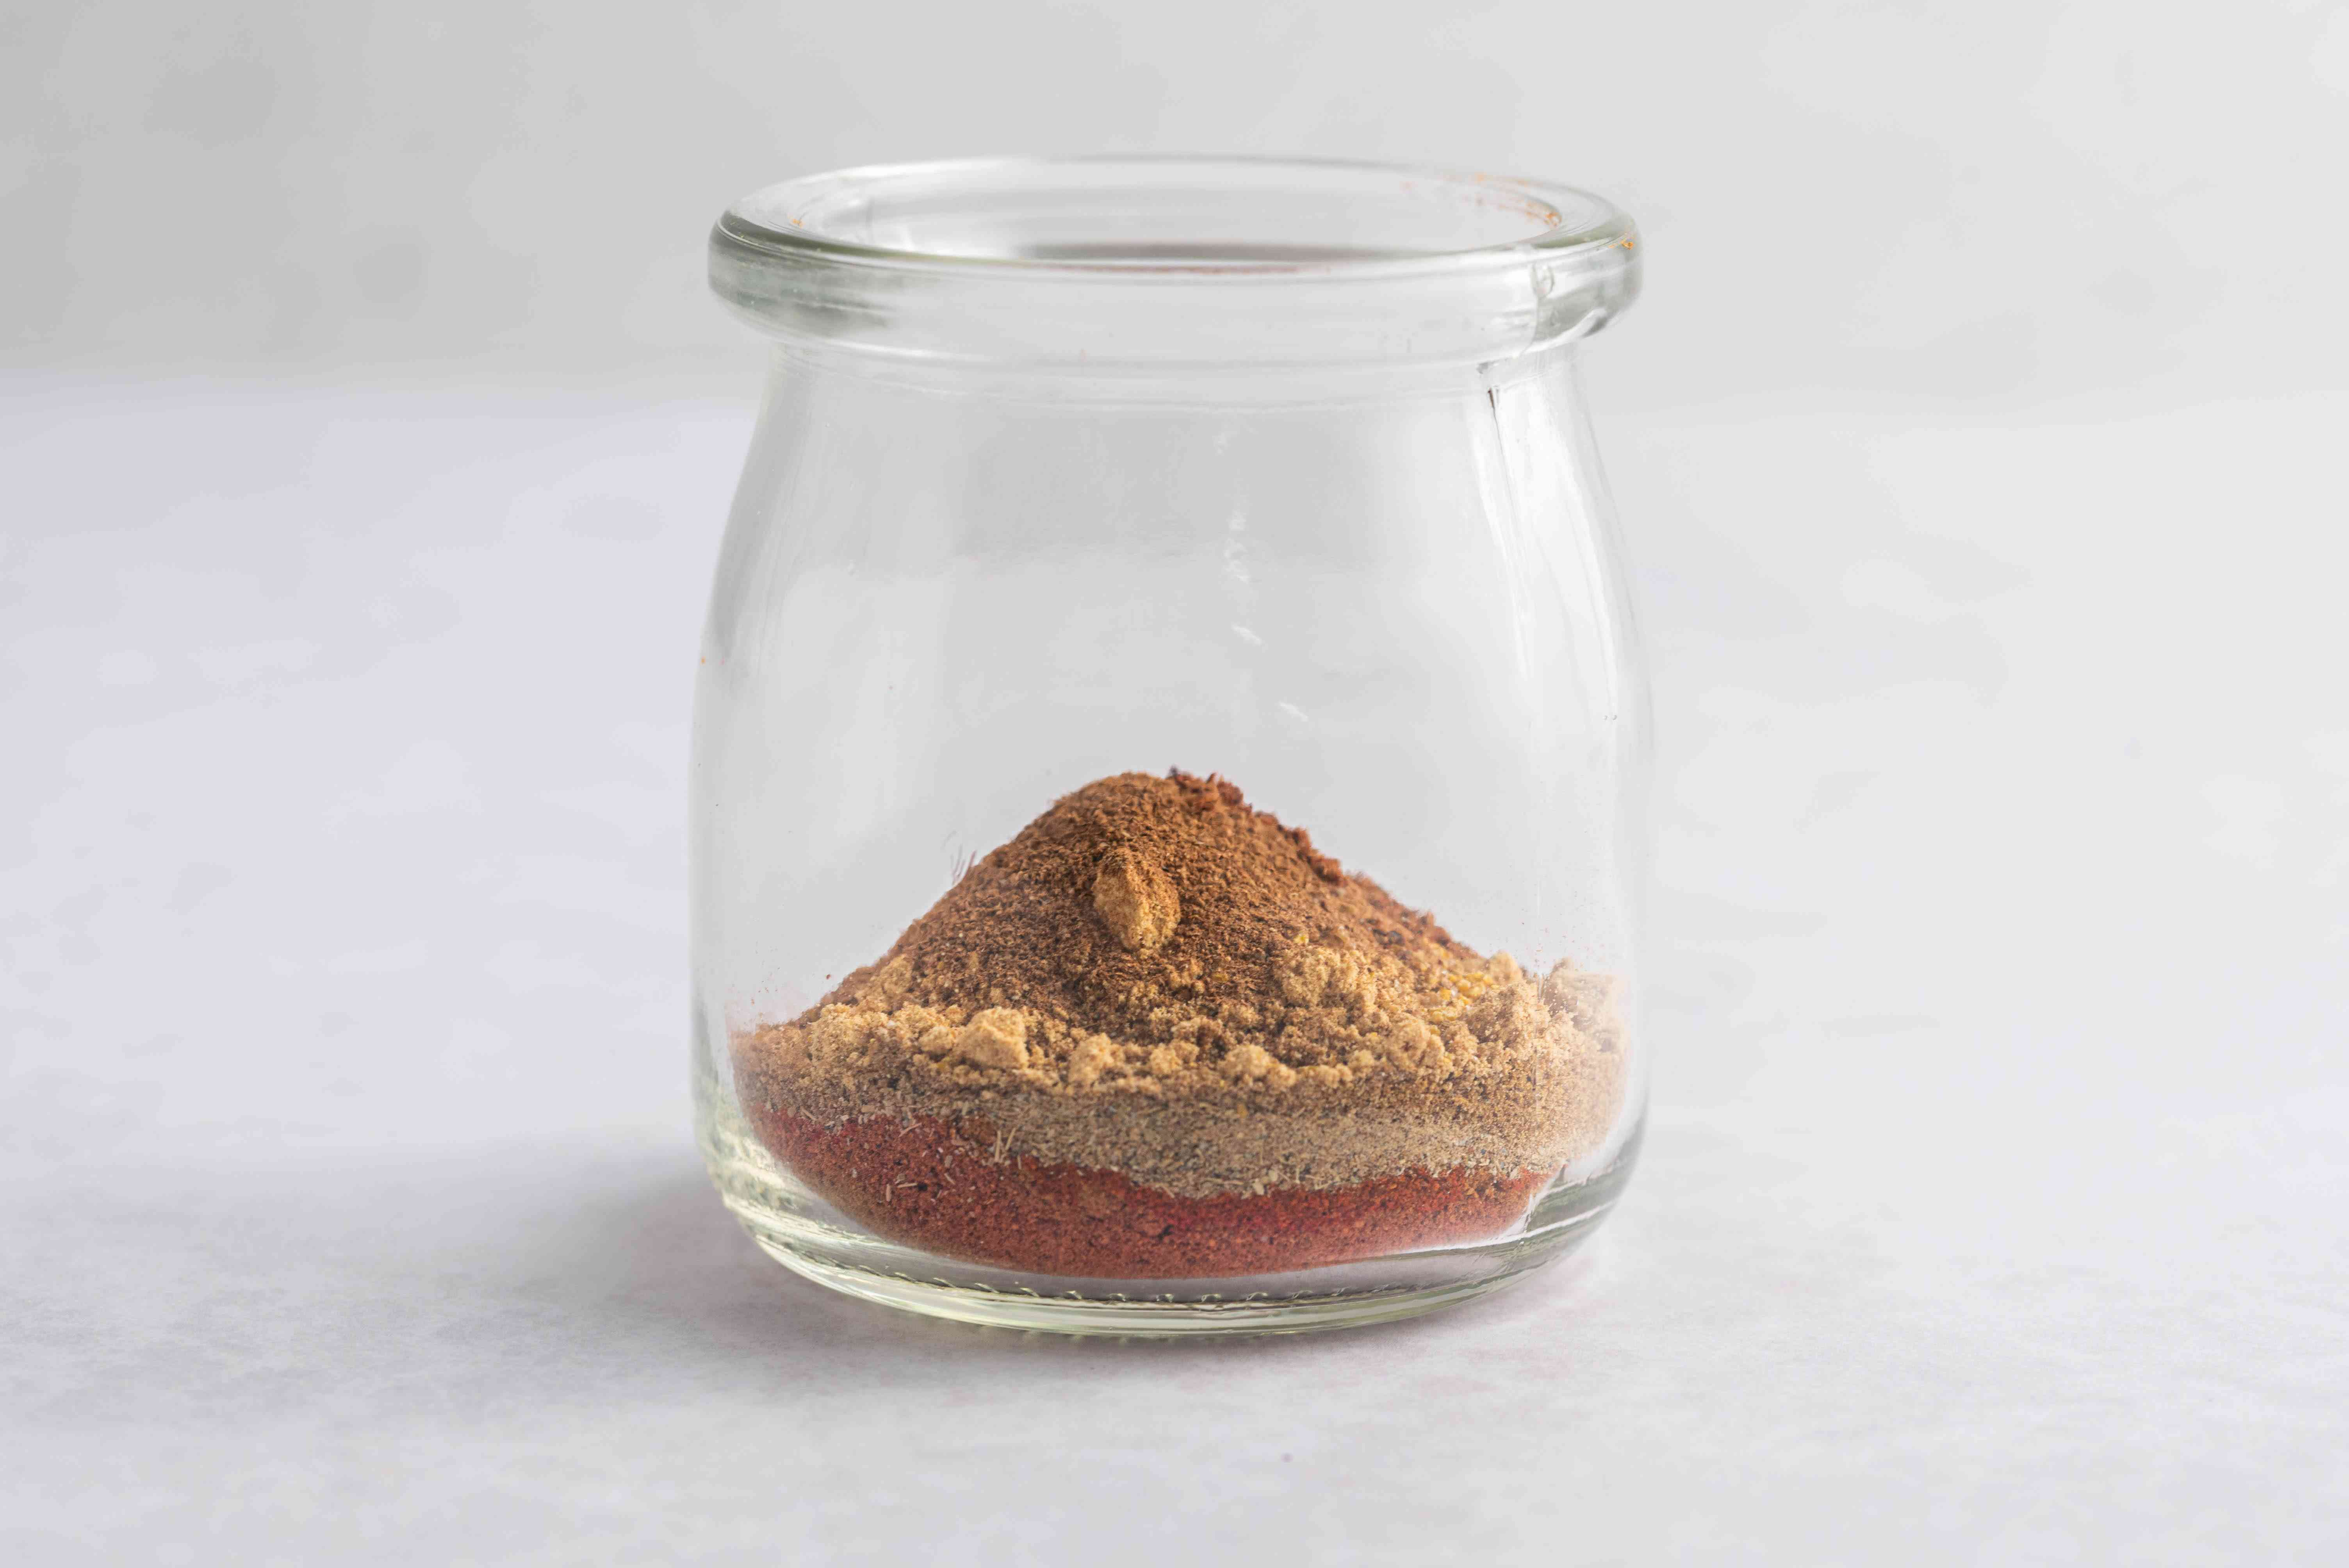 Clean and dry spice jar